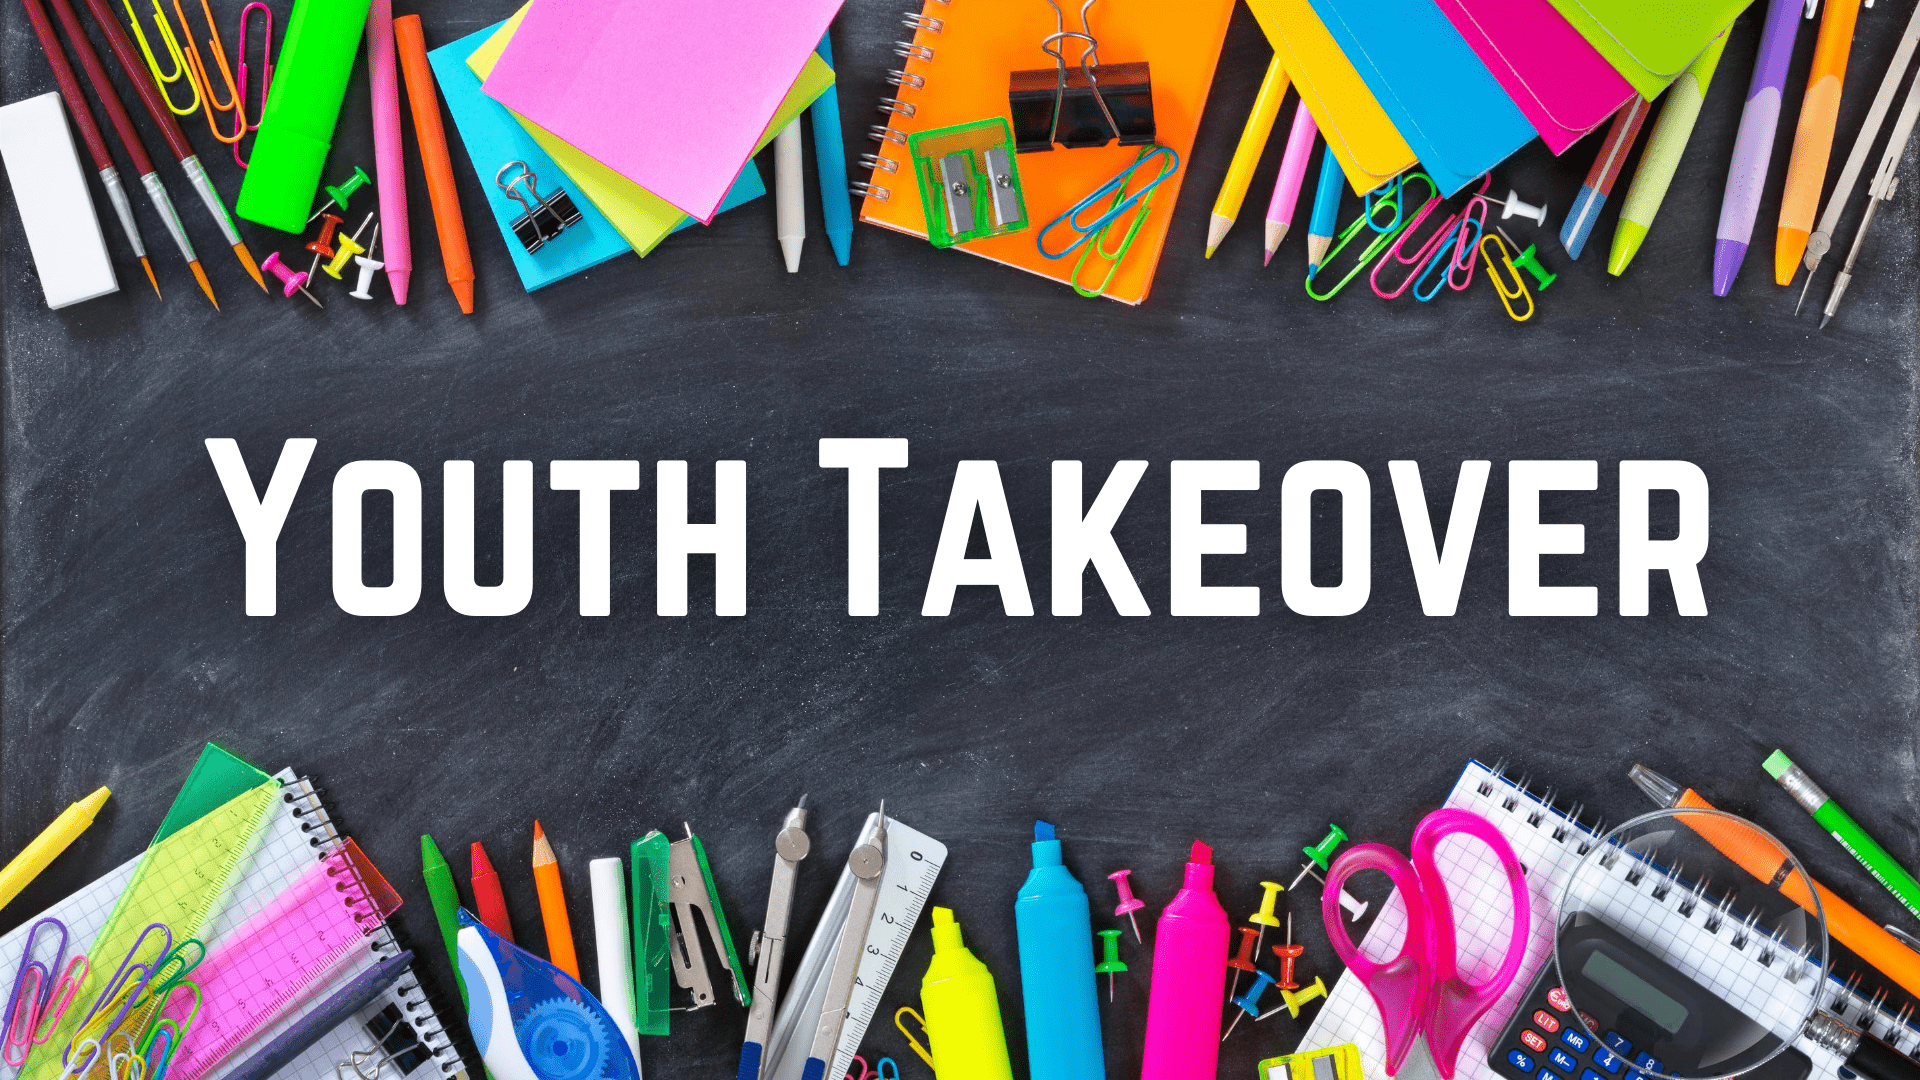 Youth Takeover - Family Style Co-schooling